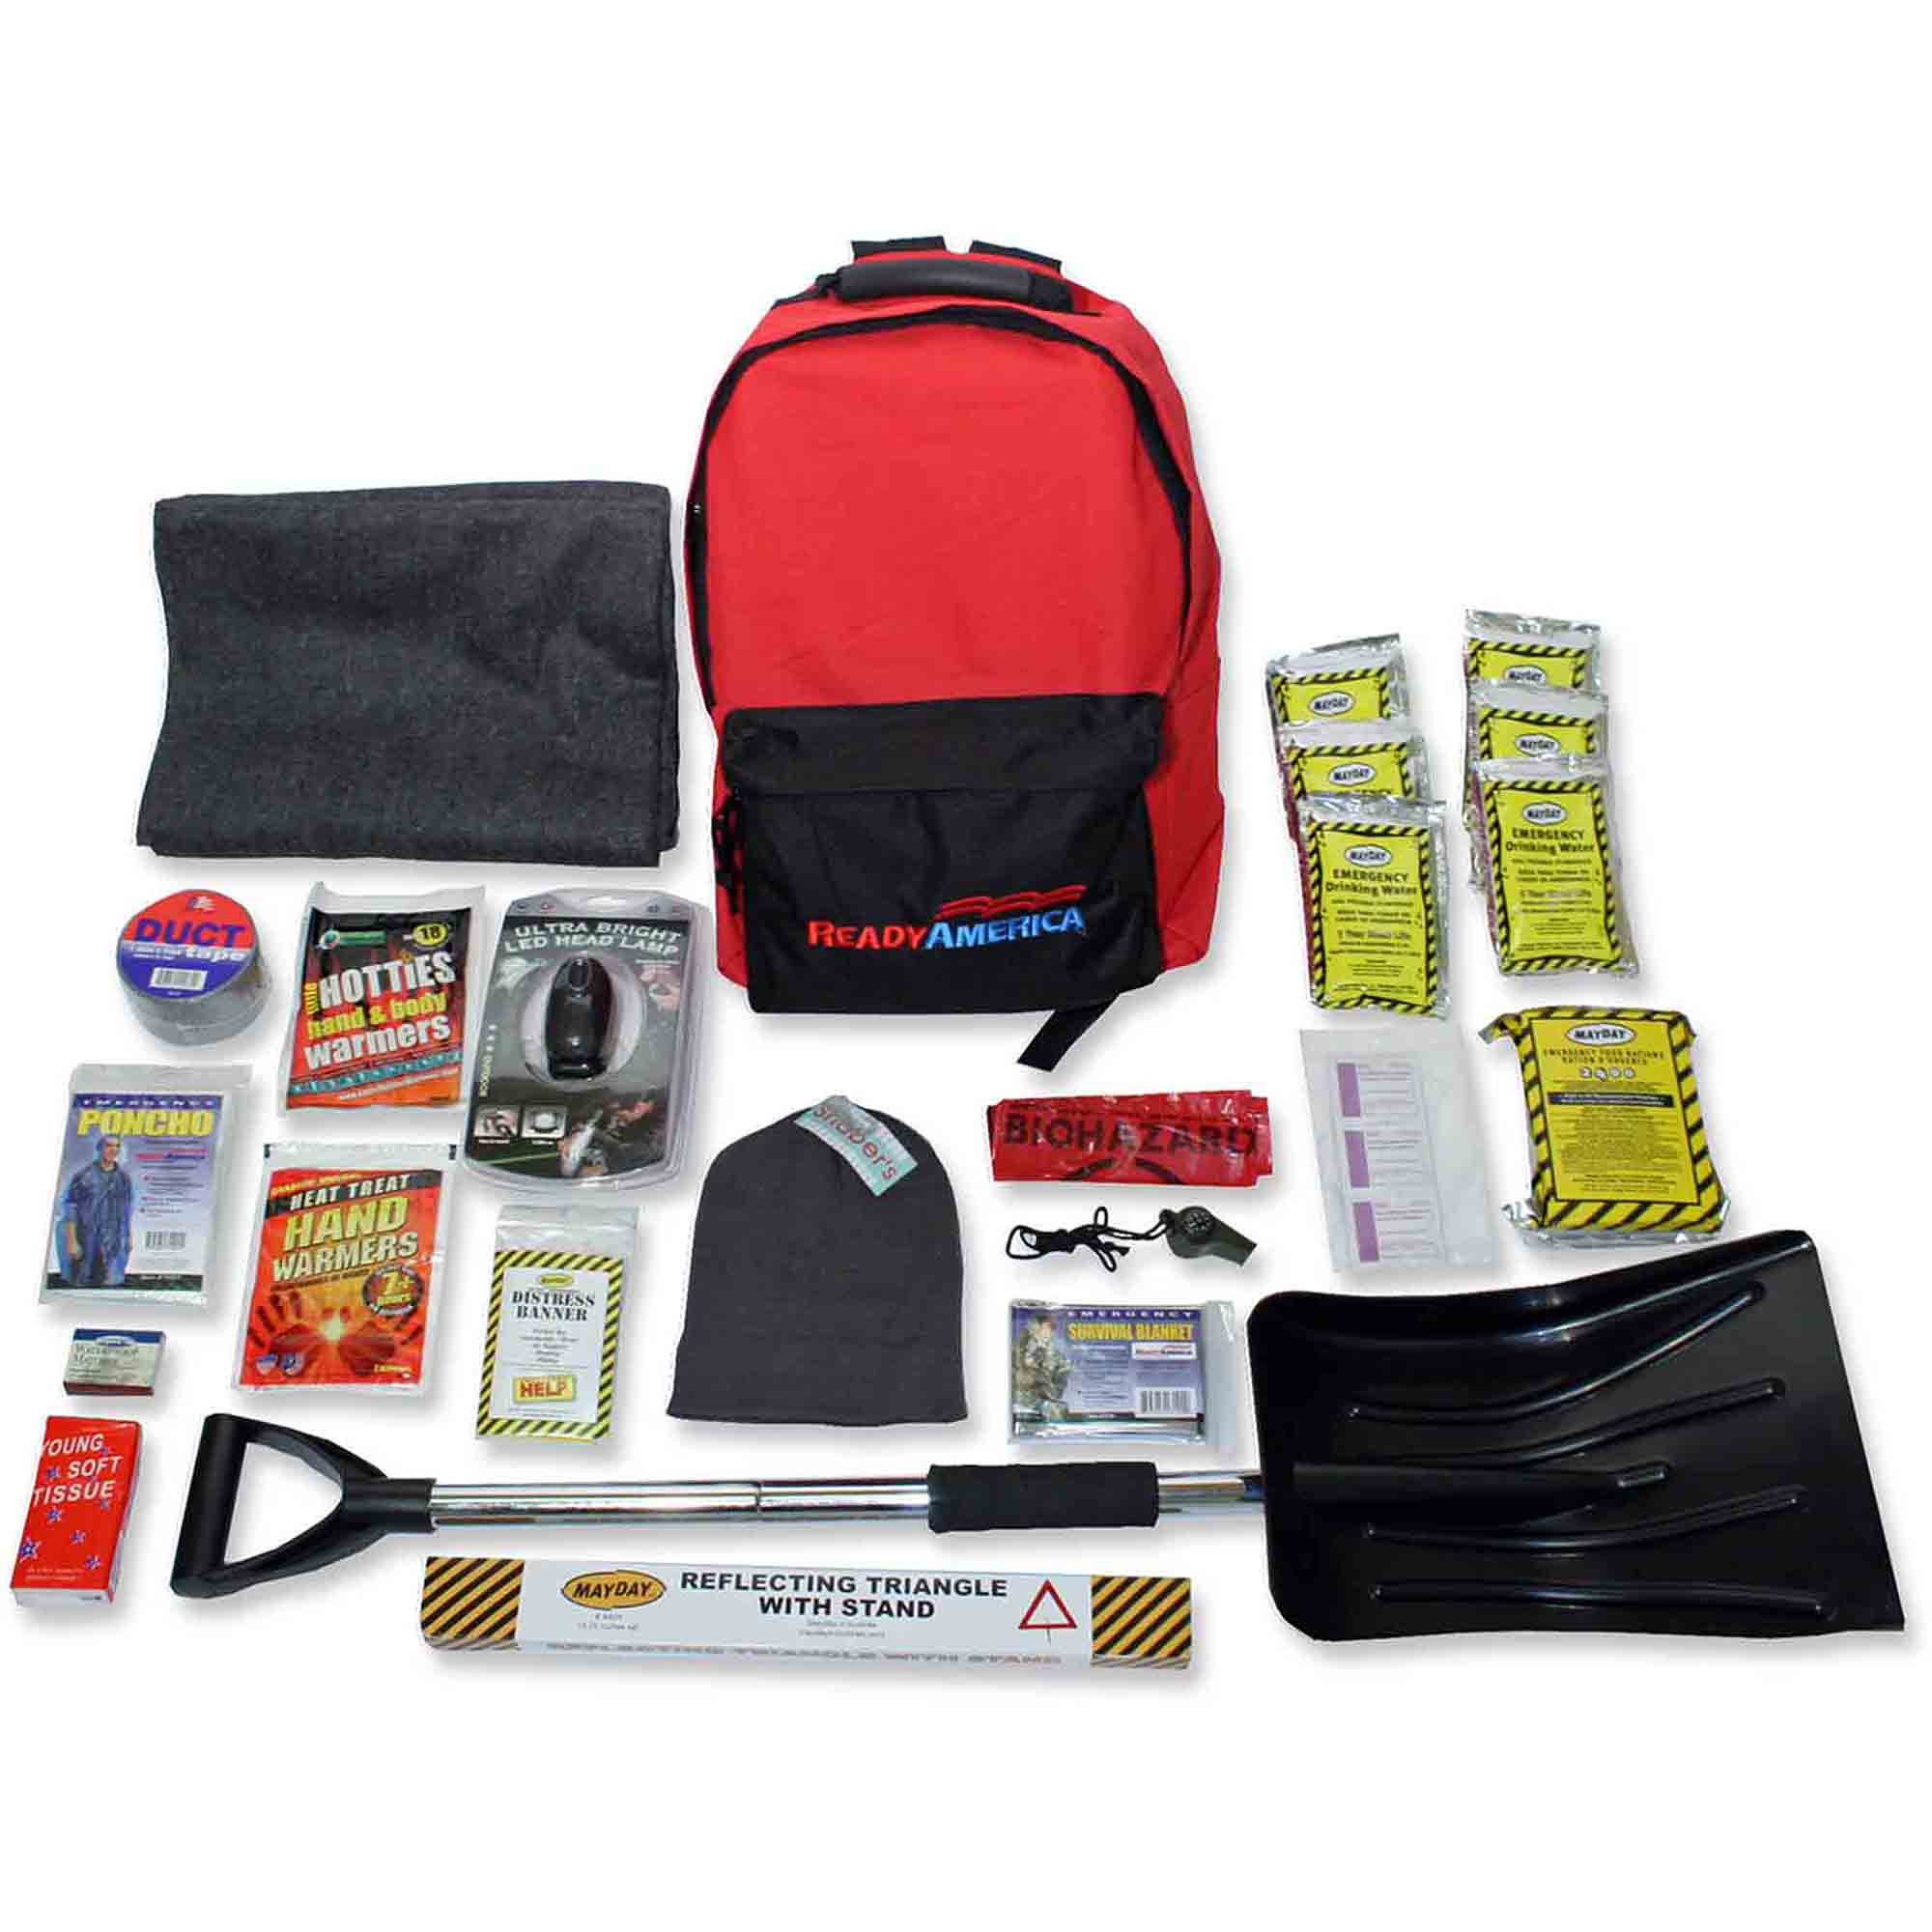 Ready America Emergency 1-Person Cold Weather Survival Kit